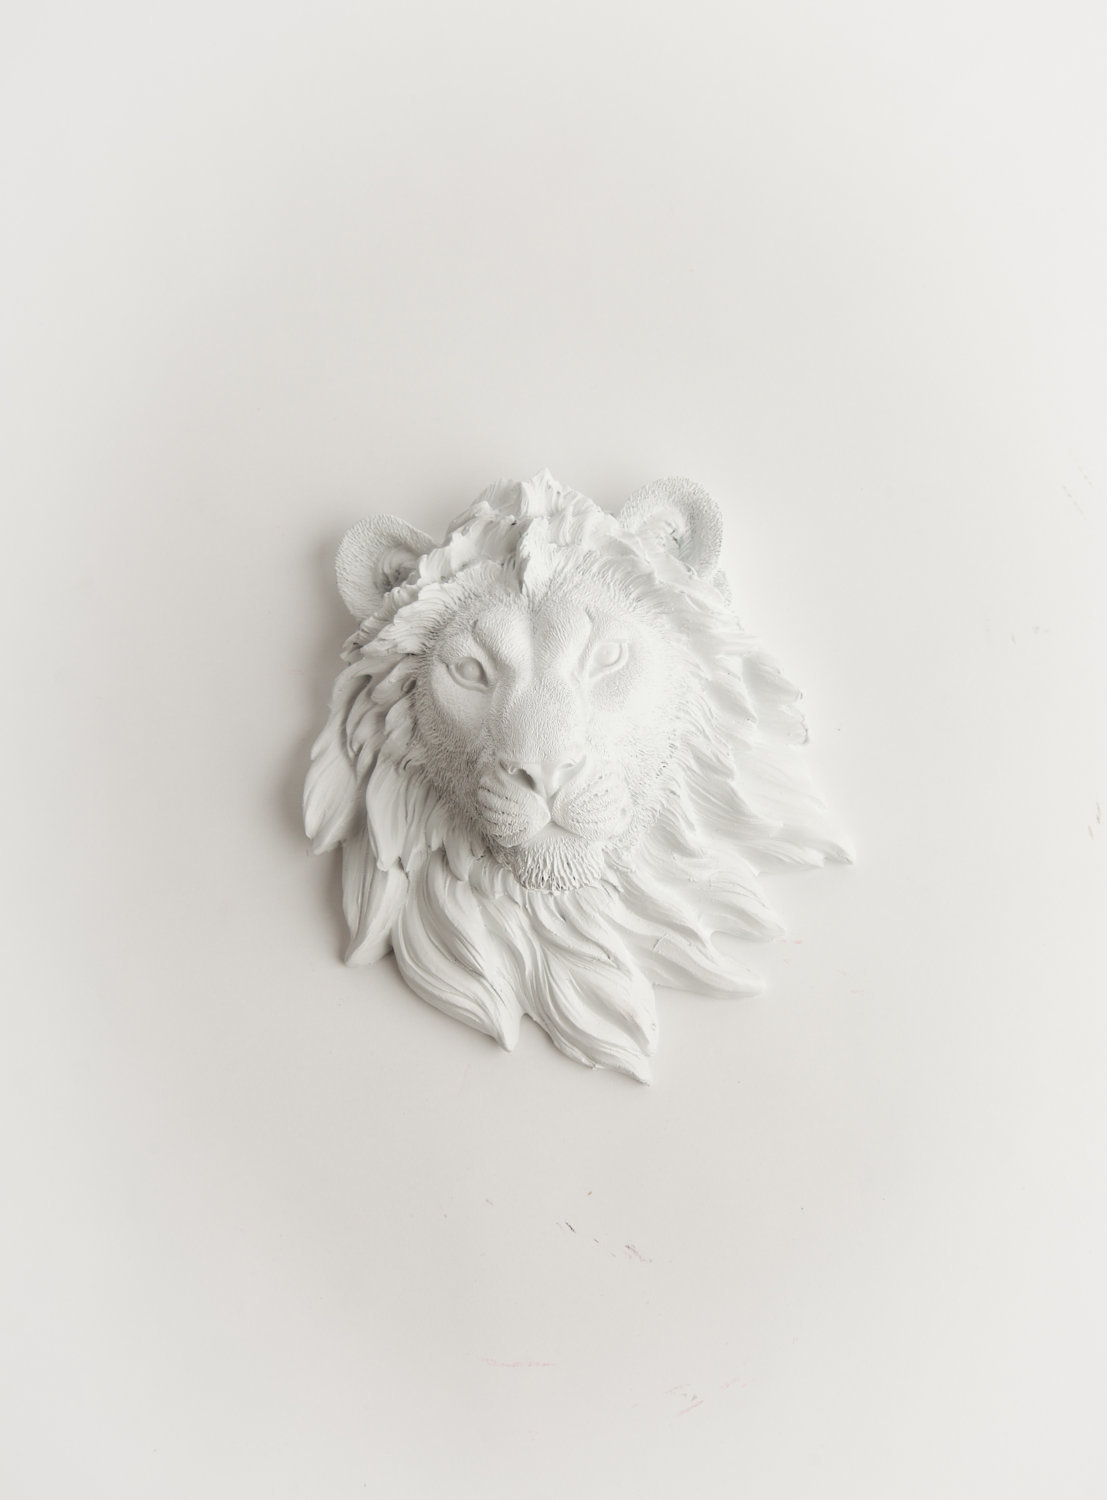 The Ramiro   Mini White Lion Head 540f7c884f3d6f6268000037